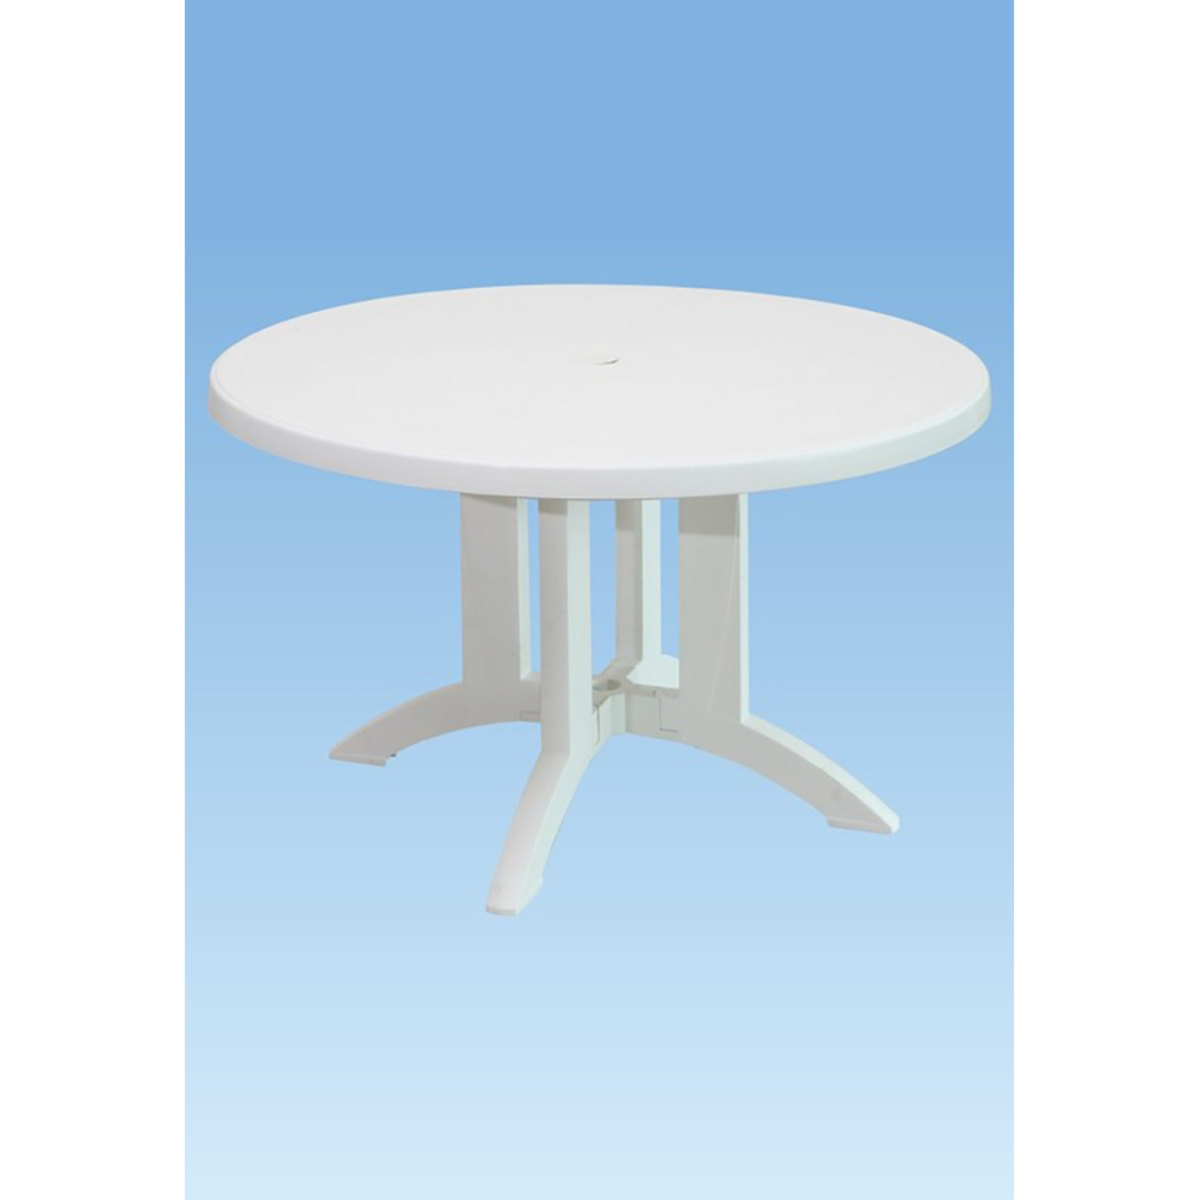 Mesa Vega 118Cm Grosfillex Branco | Carrefour tout Table Vega Grosfillex Carrefour